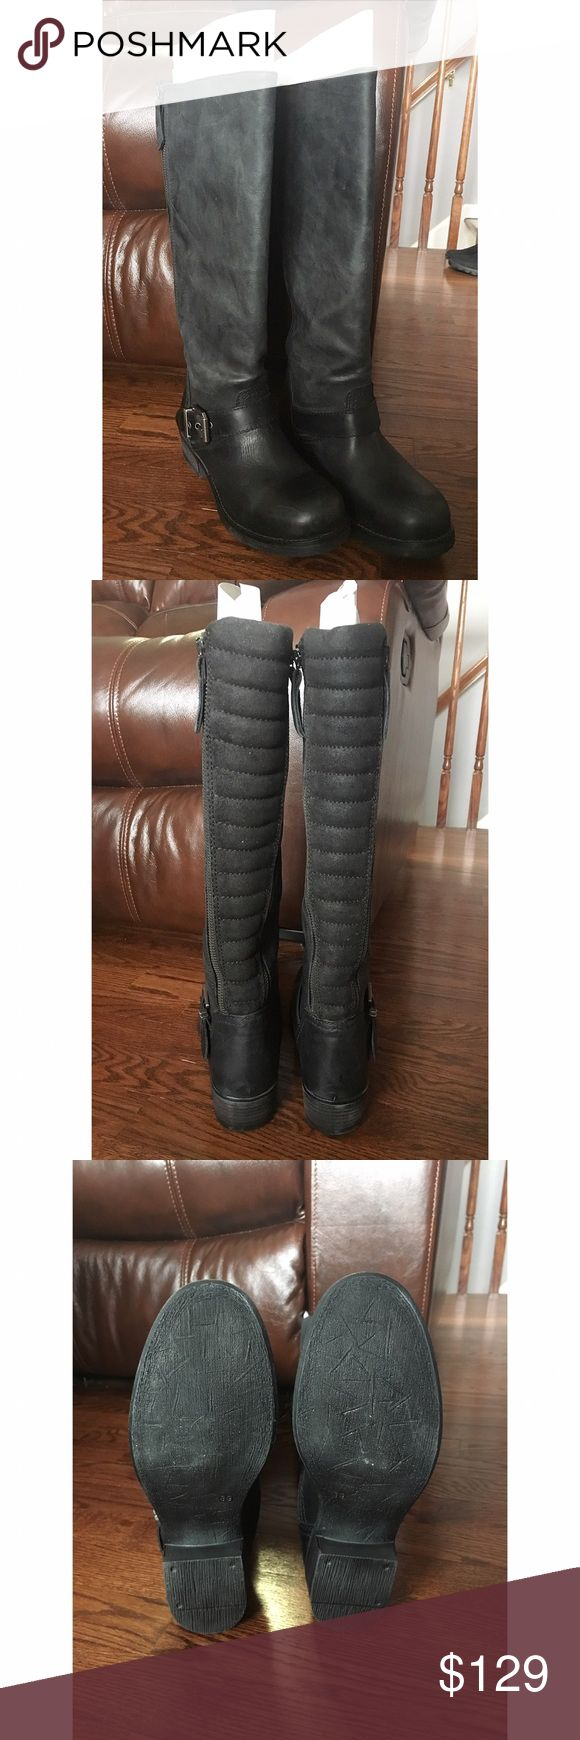 Steve Madden Rampant Boots Steve Madden Rampant Boots. Black leather, size US 9. Never worn with full packaging (still in box with tissue paper with cardboard inside boots). In perfect condition, so price is firm, no low ballers please. Two zippers on each side of each boot. Super cute, but they don't fit me 😭🖤                                                                                        🚭Coming from a smoke free home! 🚭 Steve Madden Shoes